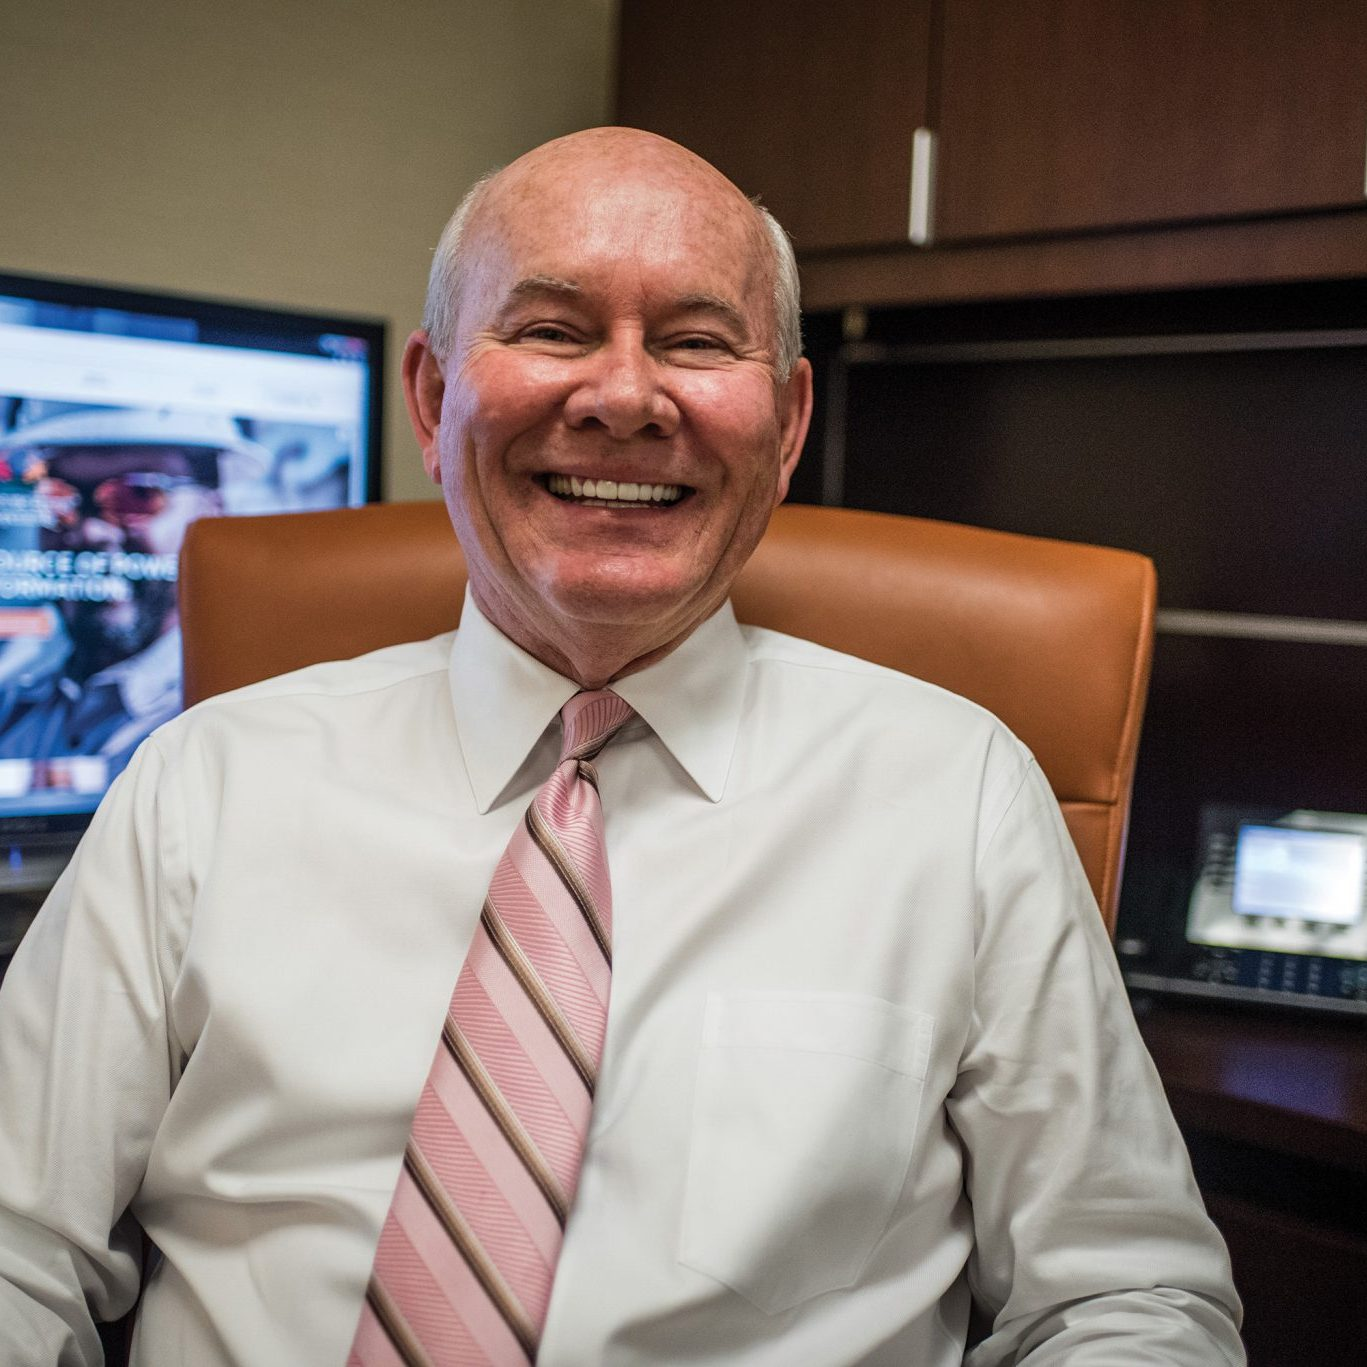 Smiling IT Professional wearing a white shirt and pink tie sitting in an office chair at his desk